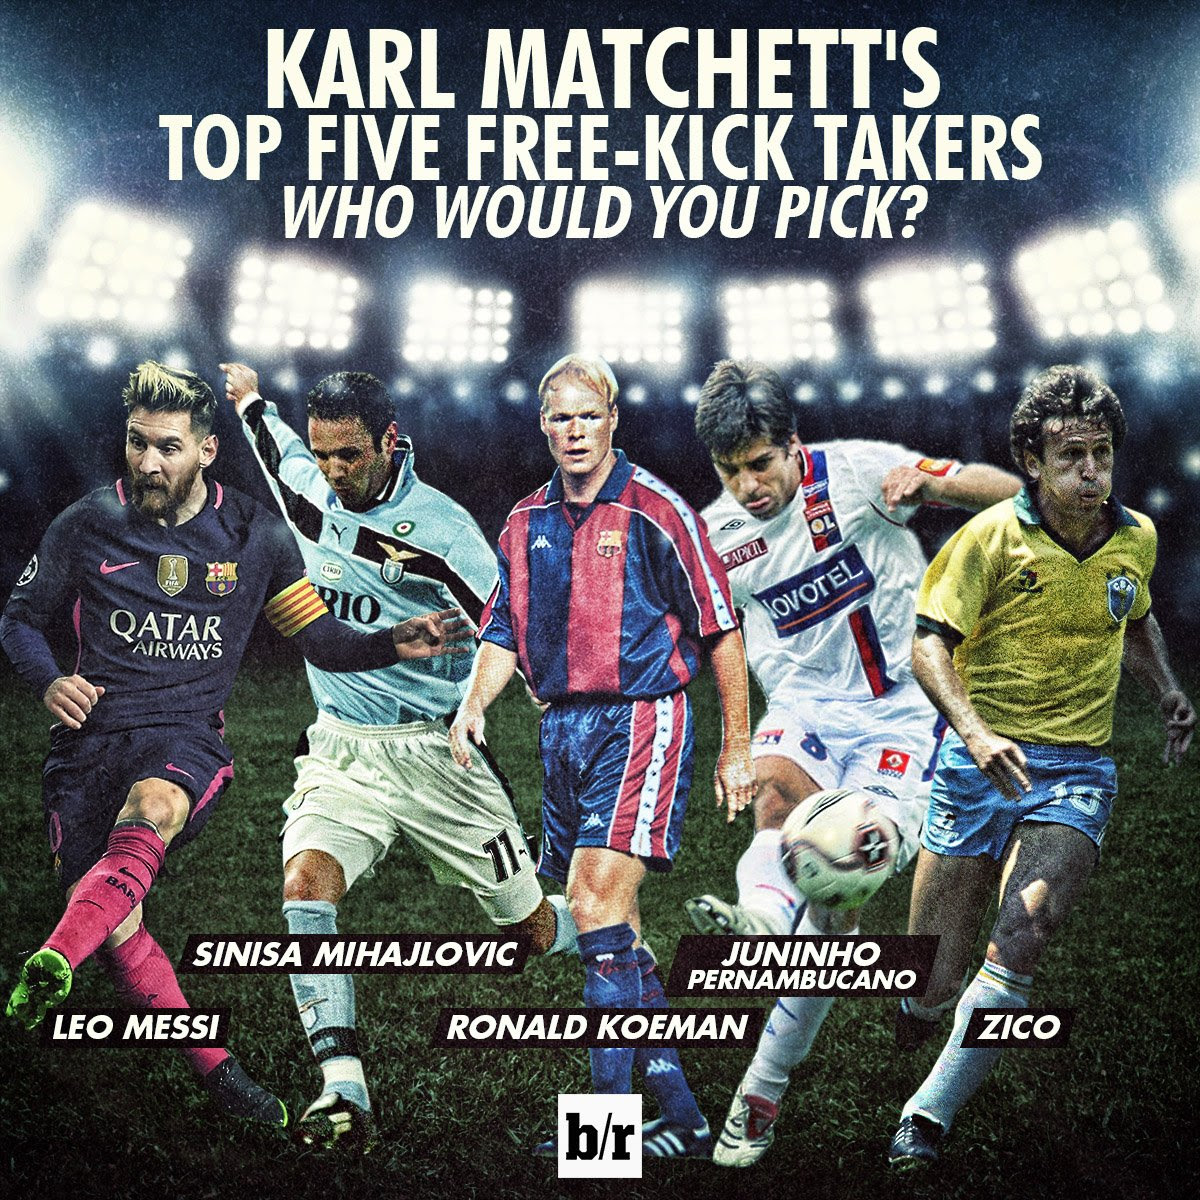 Where Does Lionel Messi Rank Among The Greatest Free Kick Takers Of All Time Bleacher Report Latest News Videos And Highlights